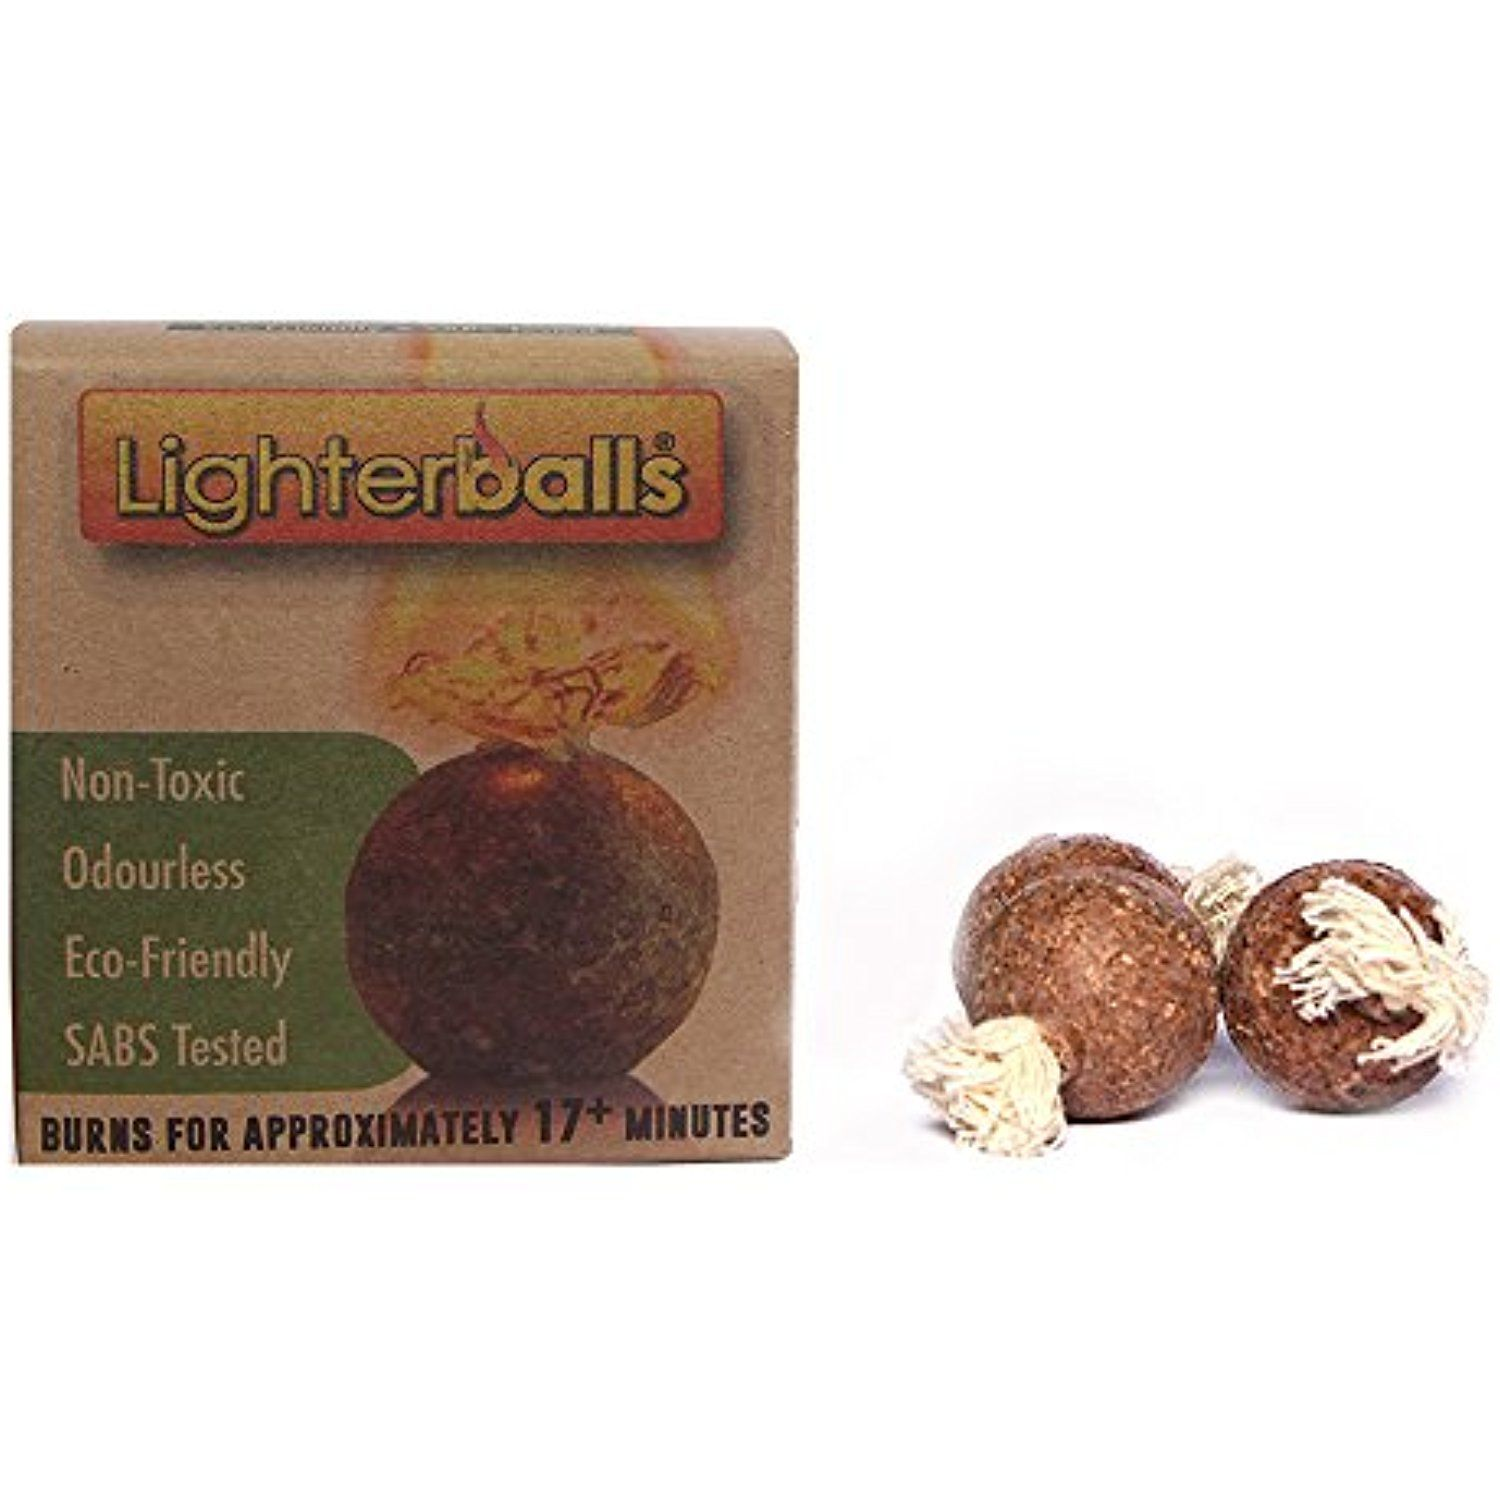 Lighter Ball Fire Starters Eco Friendly Non Toxic Odorless Lighters Pack